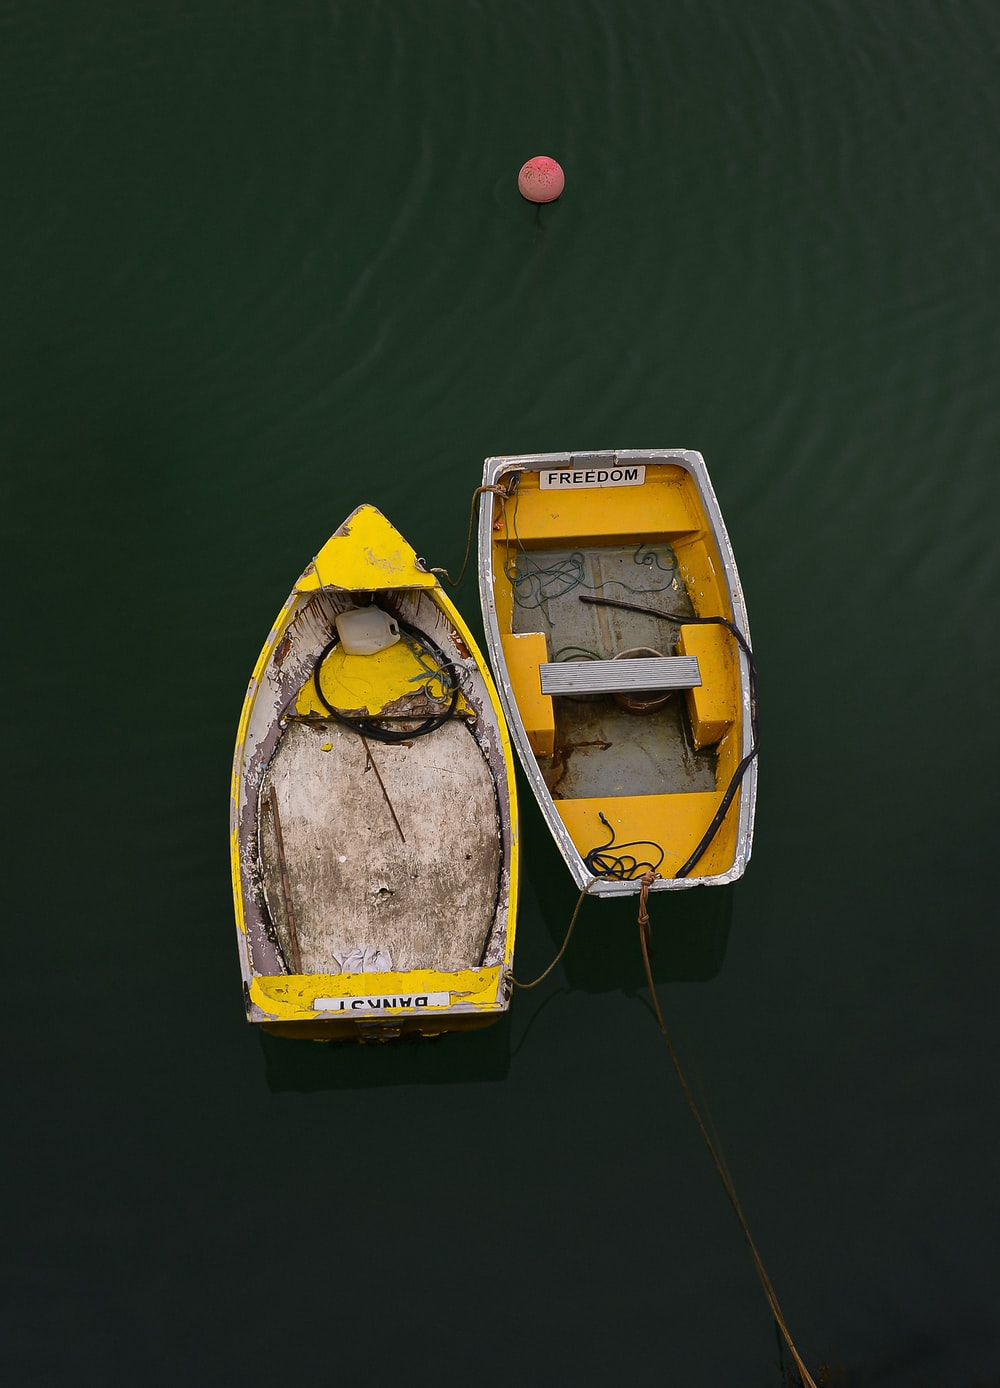 yellow and white boat on water